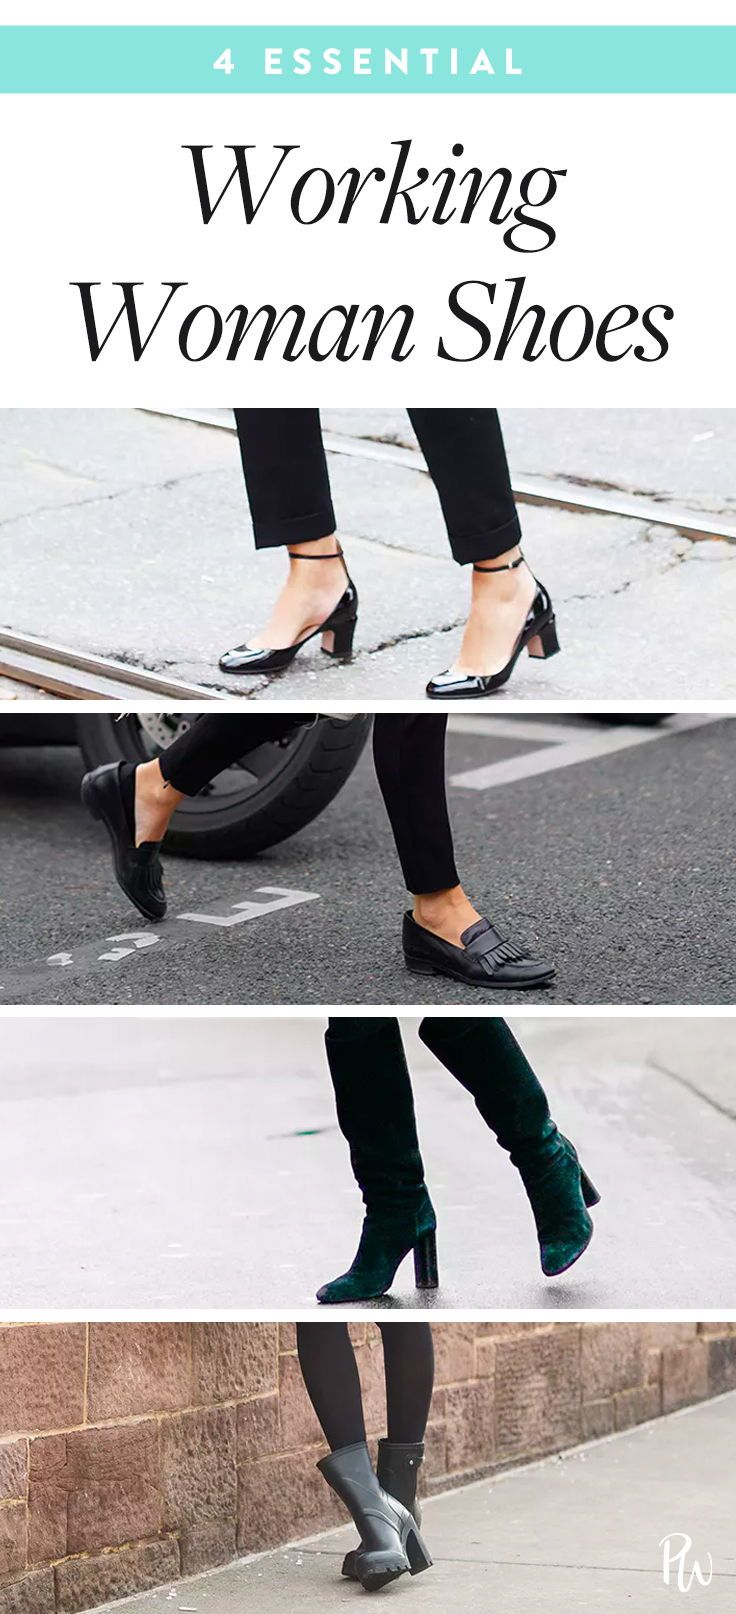 762208d3fb911 4 Essential Working Woman #workingwoman #shoes #heels #wedges #boots